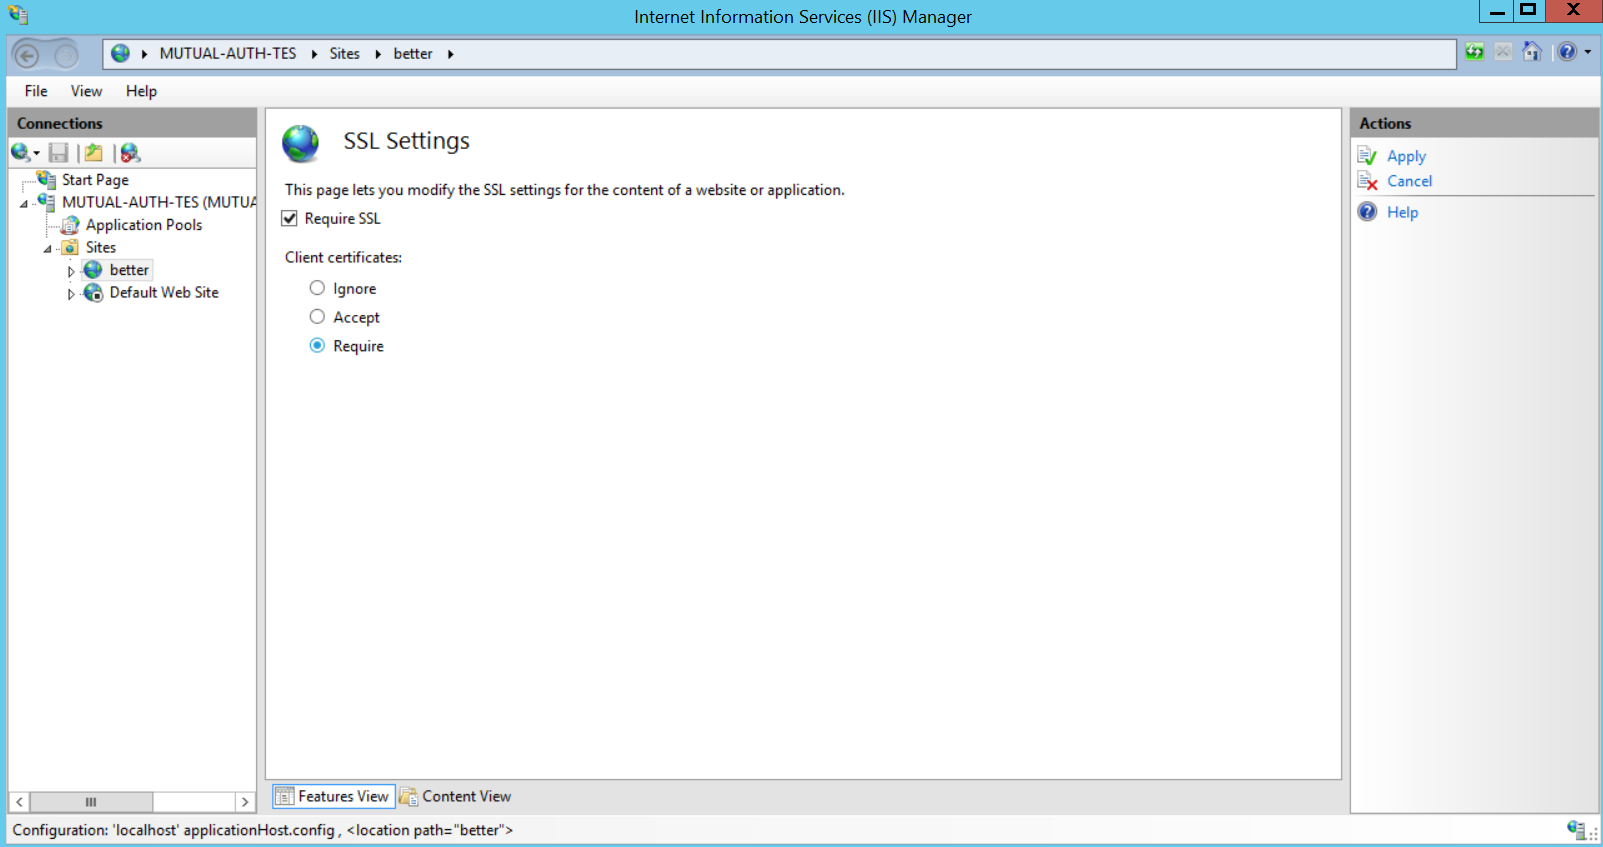 Configuring client certificates for mutual authentication on IIS 8